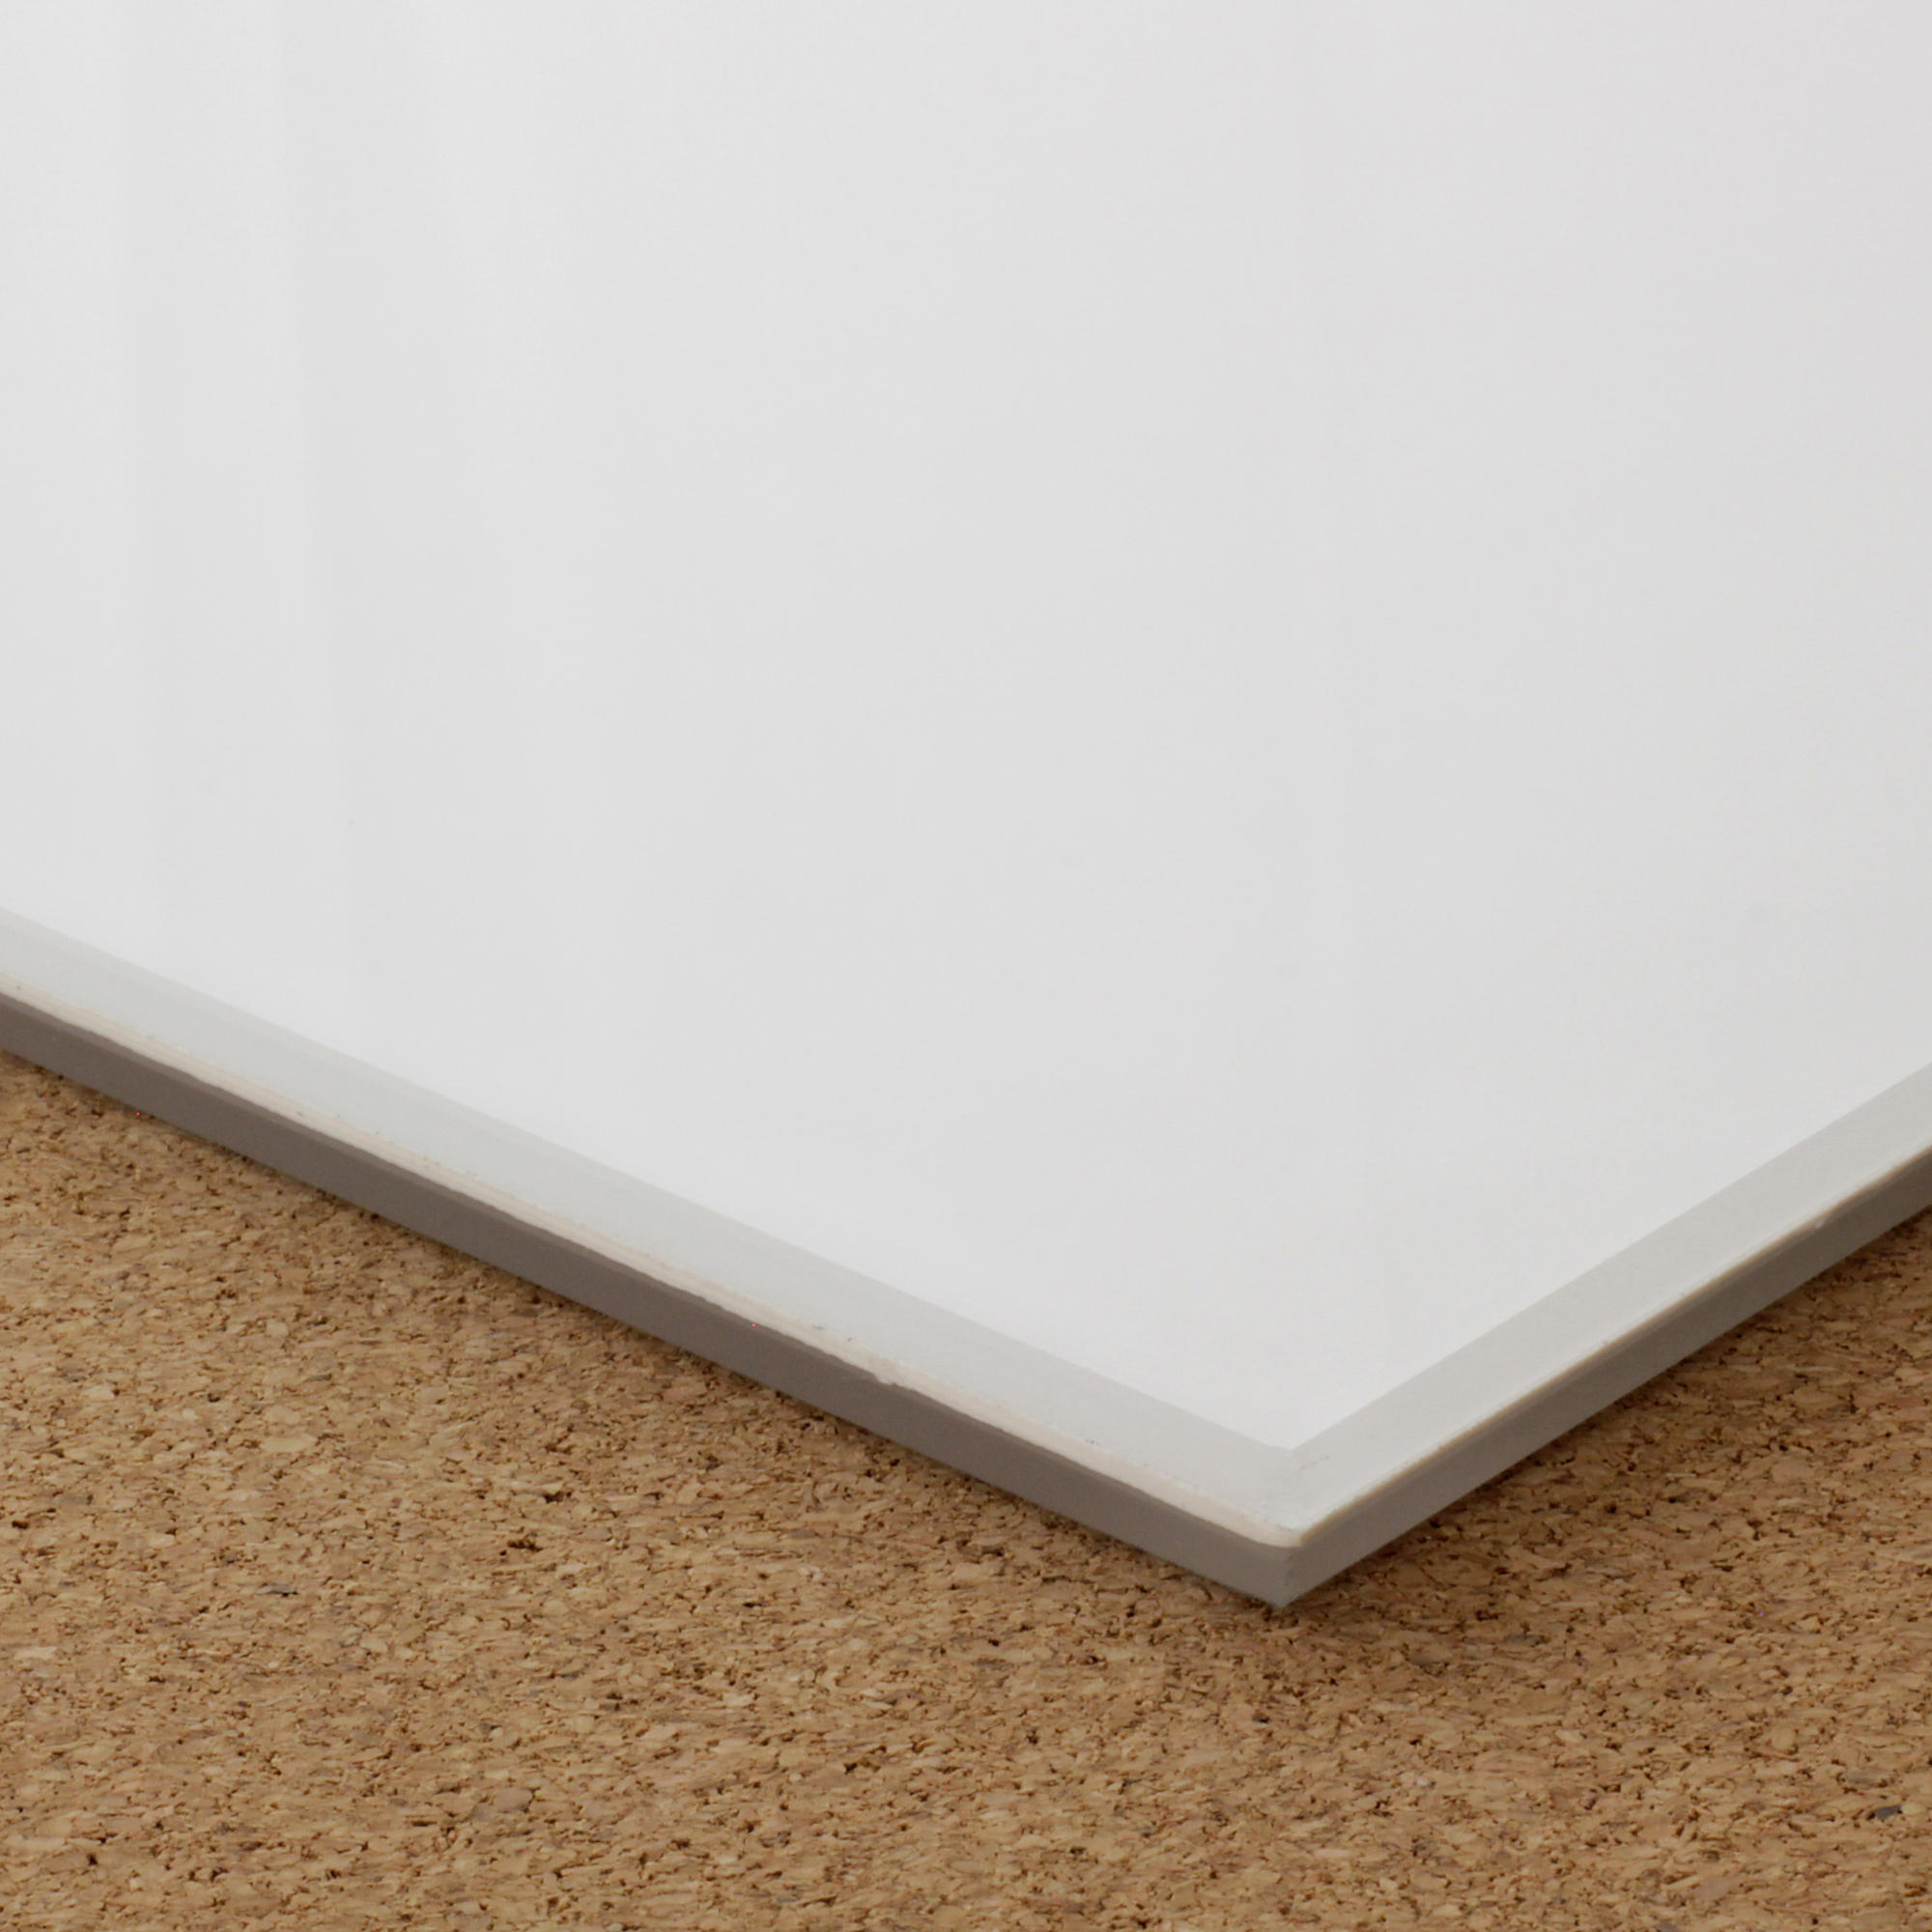 8.72MM LOW IRON OPAQUE WHITE PVB LAMINATED GLASS - Glass ...